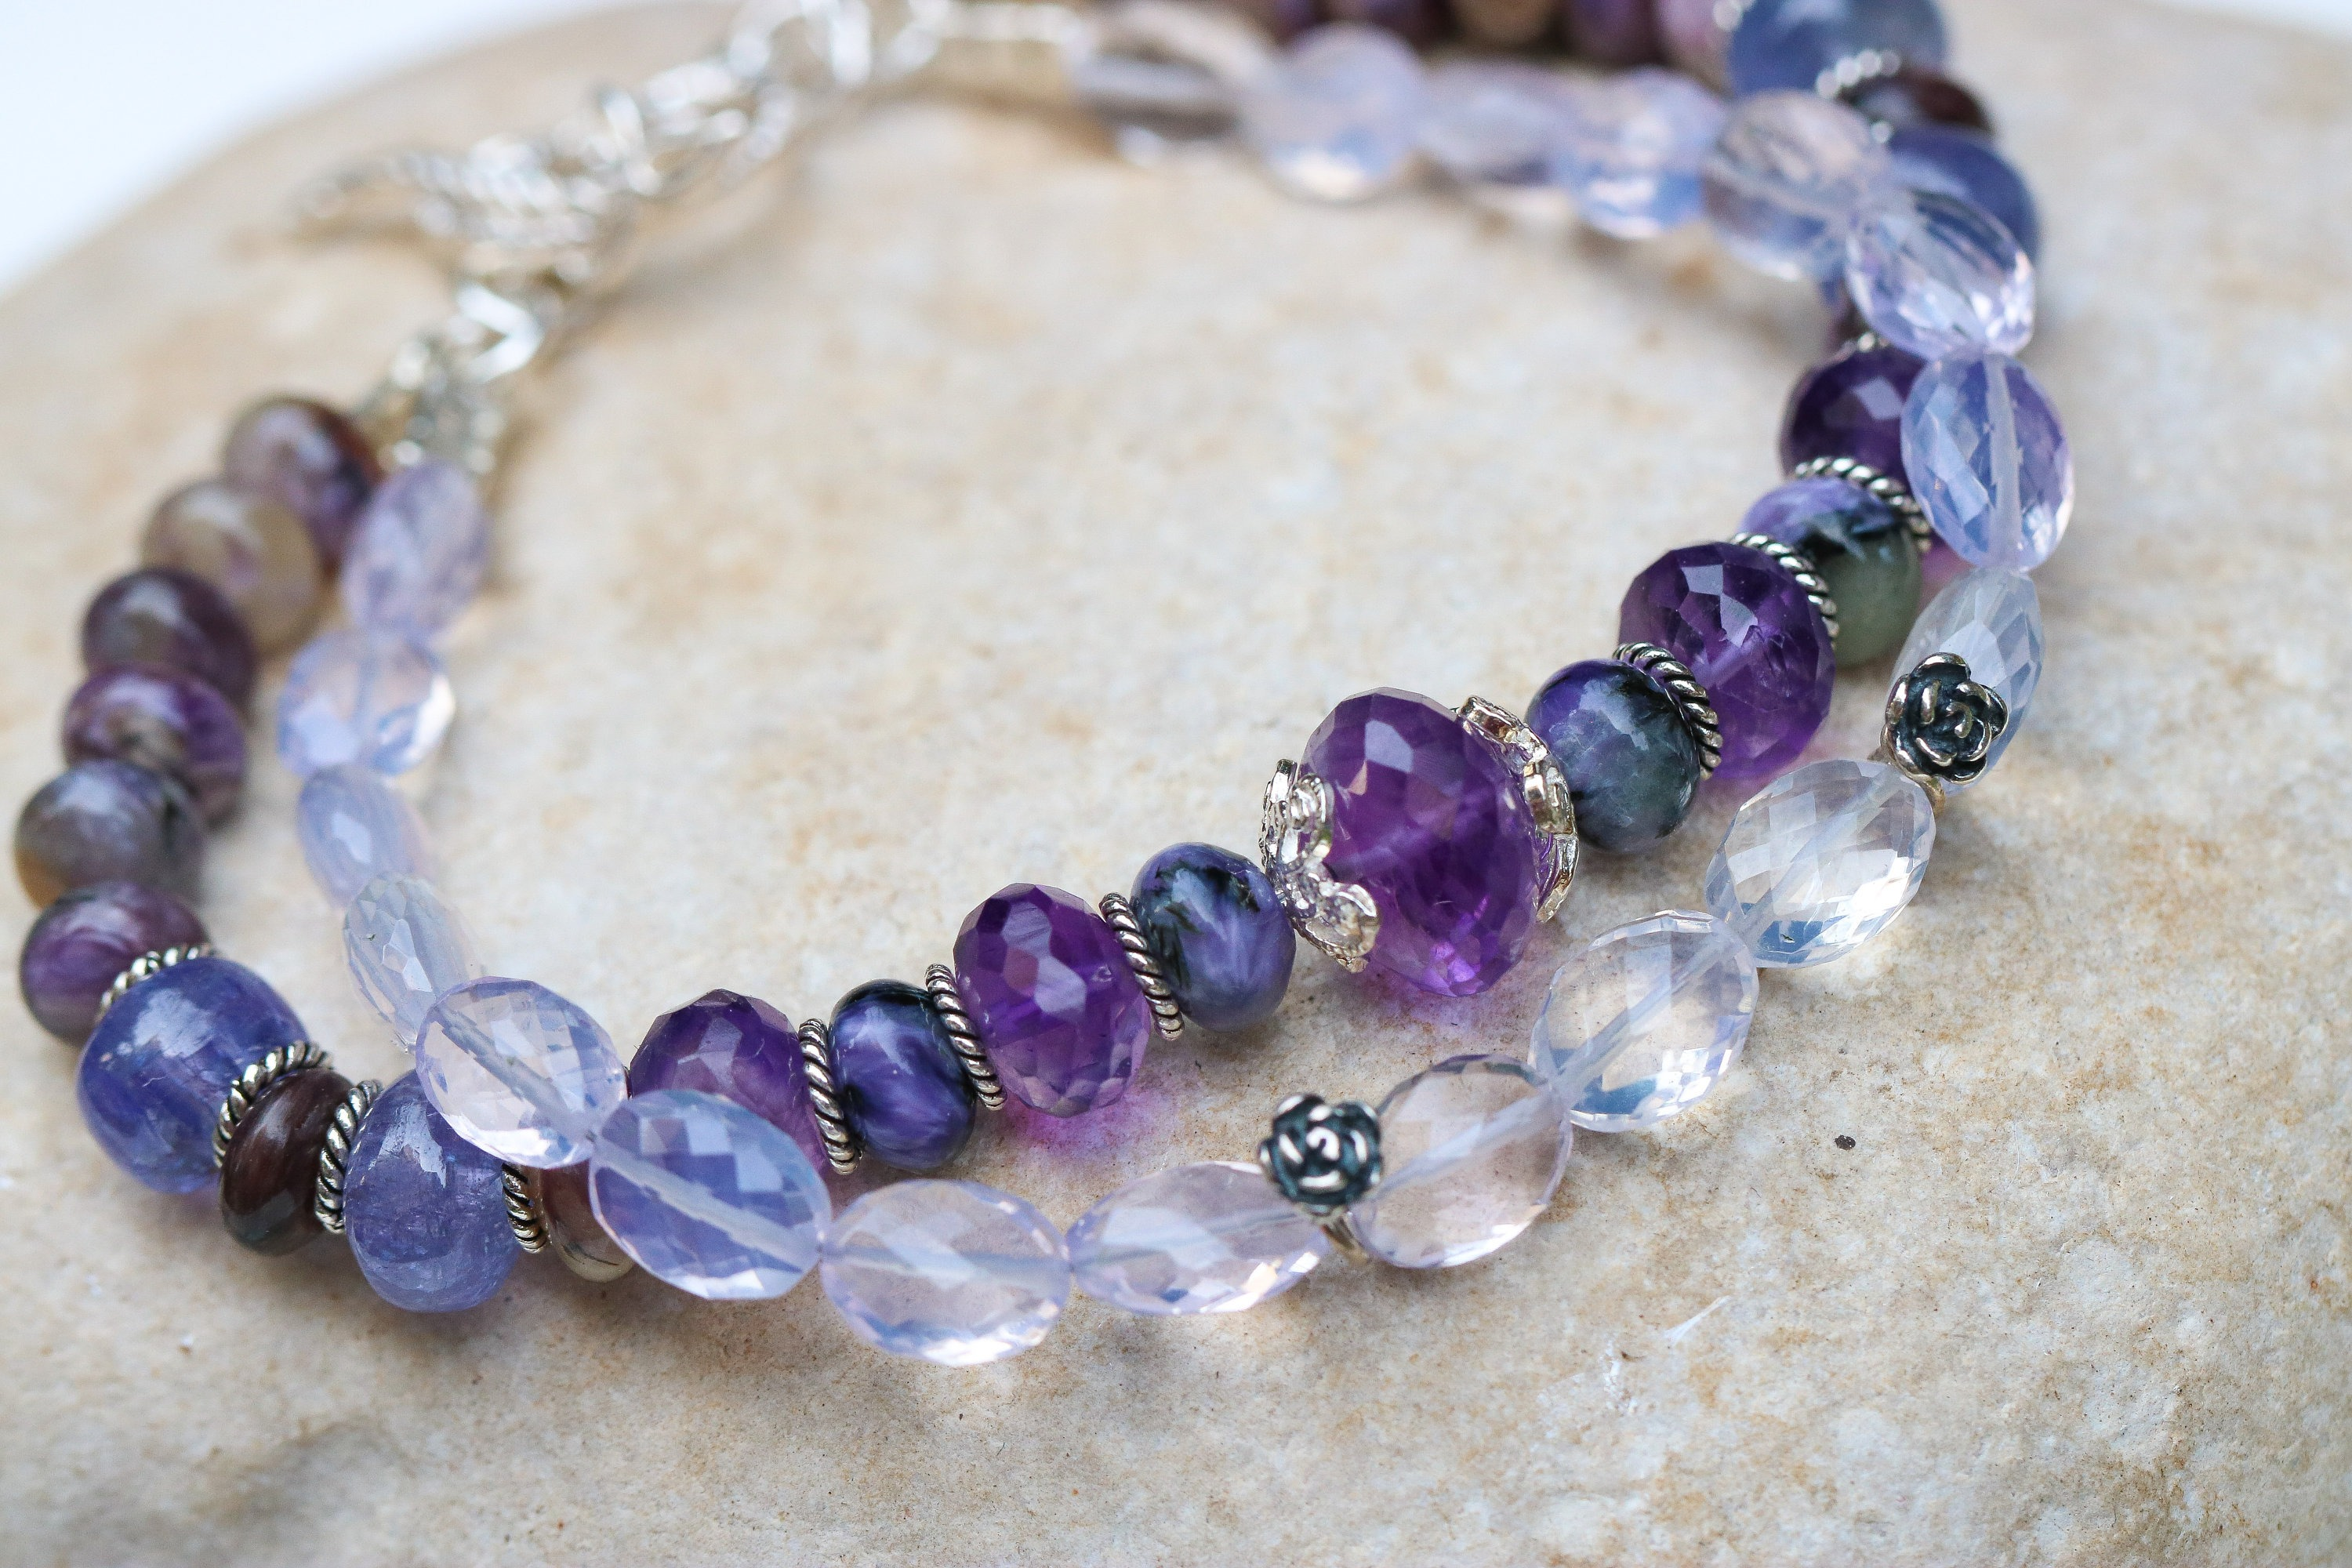 fallwinter colors trend world pantone etsy bead jbmdesigns purple bracelet velvet